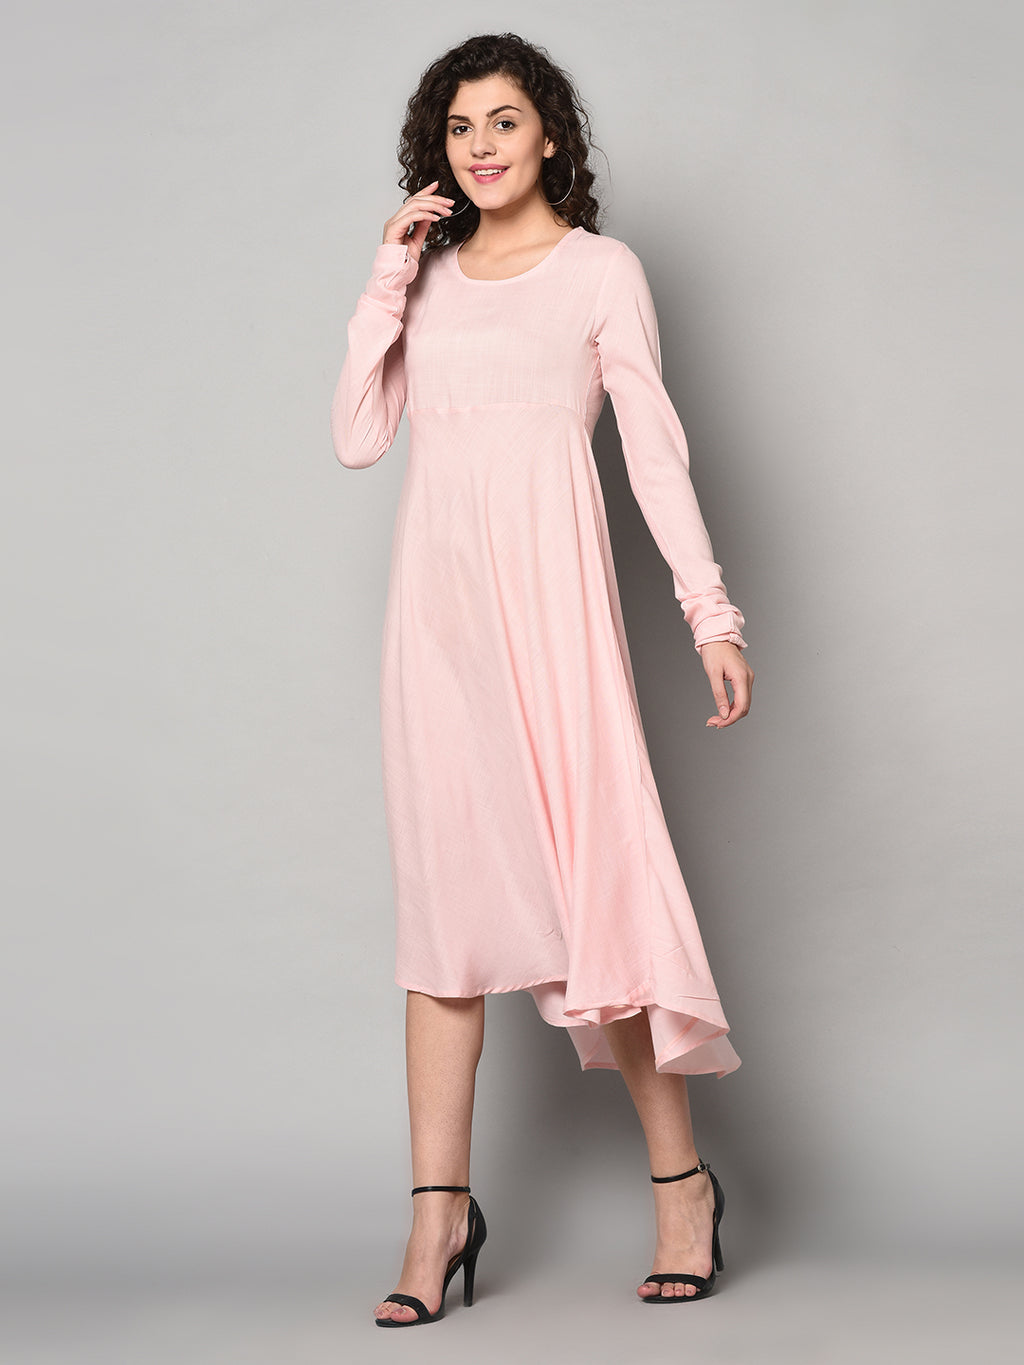 ZNX Women Solid Pink Ankle Length Kurta (Fully Stitched)